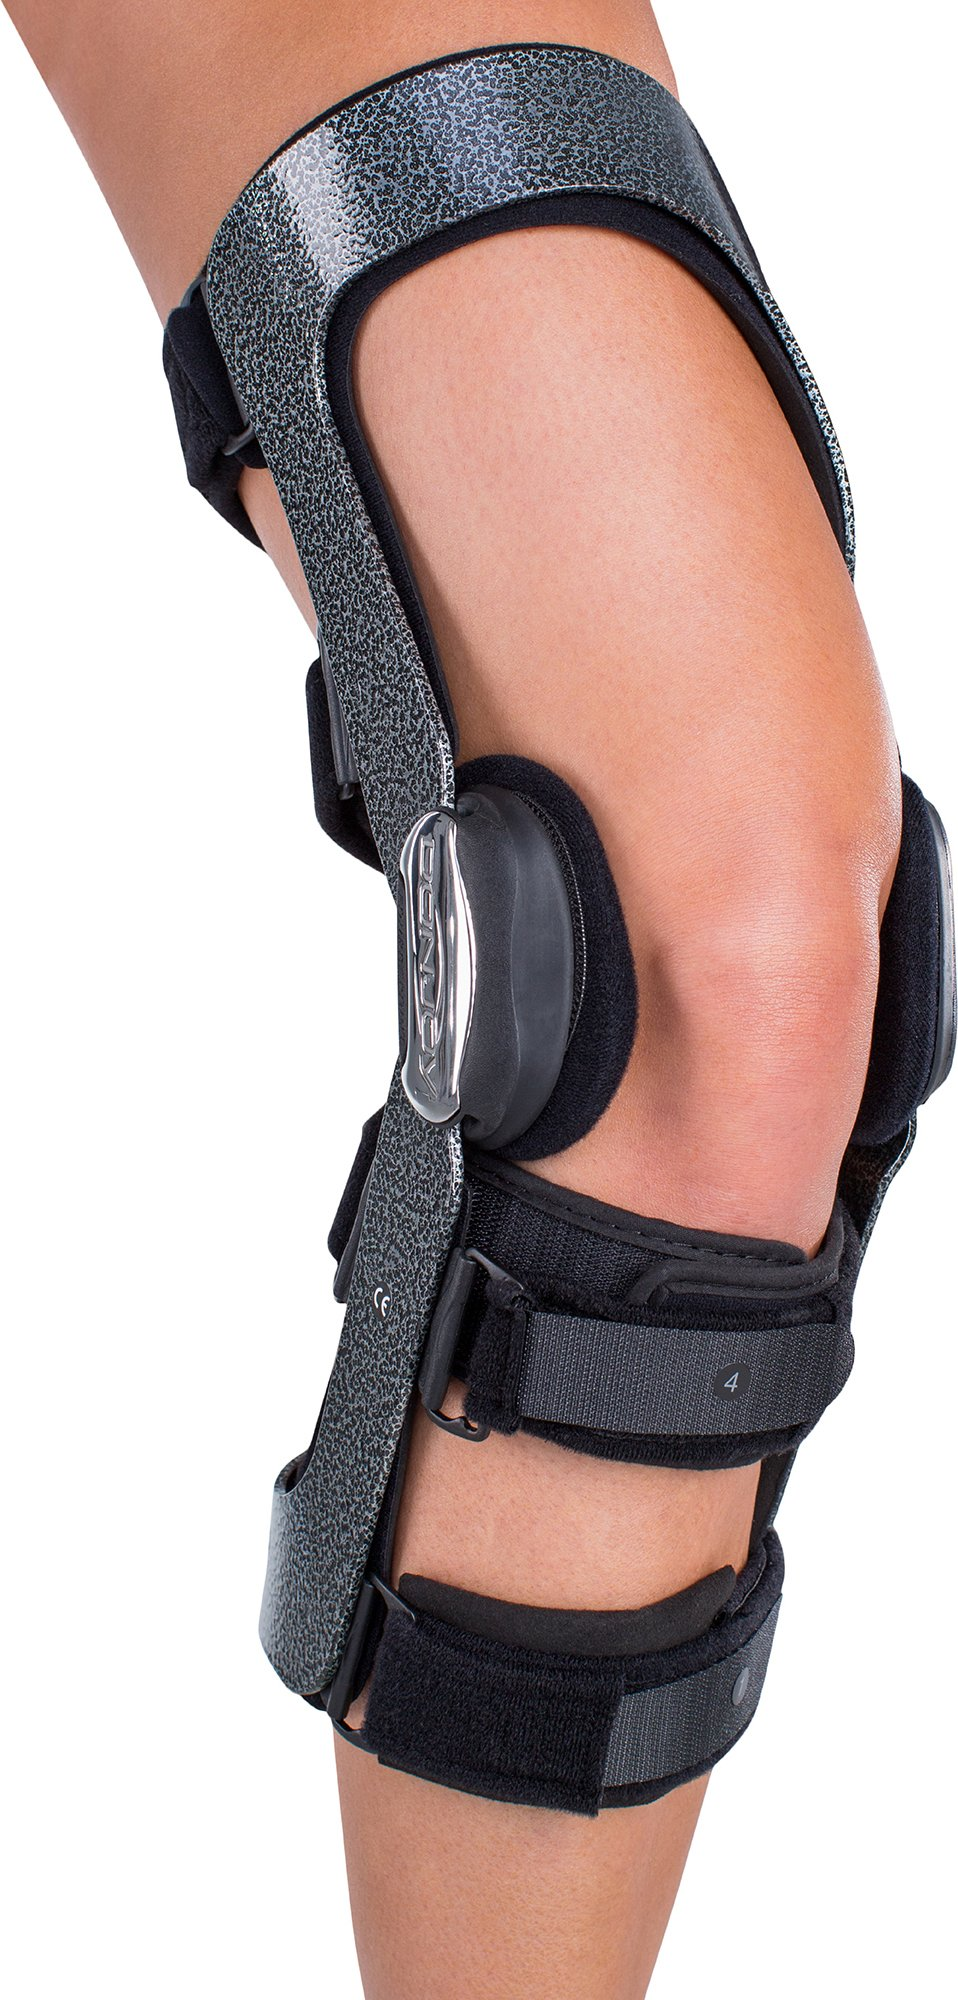 DonJoy Armor Knee Support Brace with FourcePoint Hinge: Standard Calf Length, Right Leg, Large